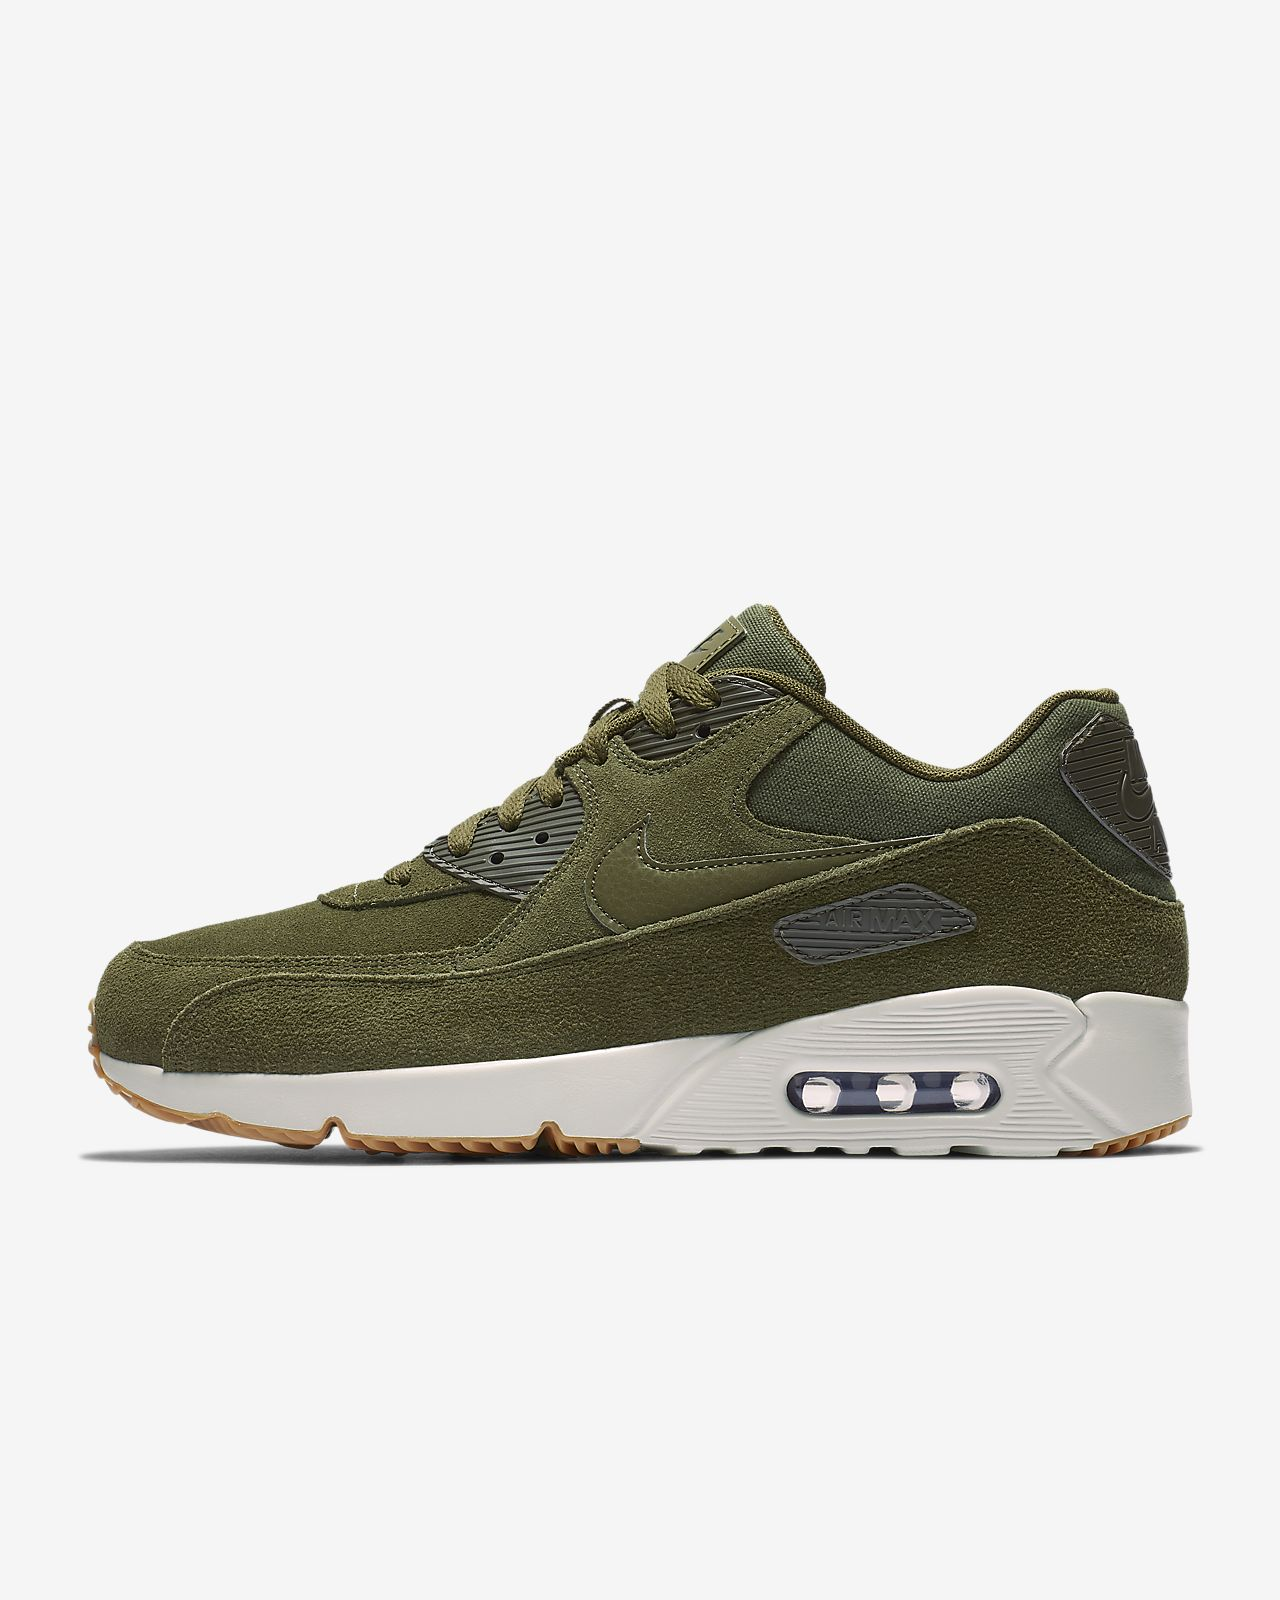 wholesale dealer 6a59a 6be00 ... Nike Air Max 90 Ultra 2.0 Men s Shoe